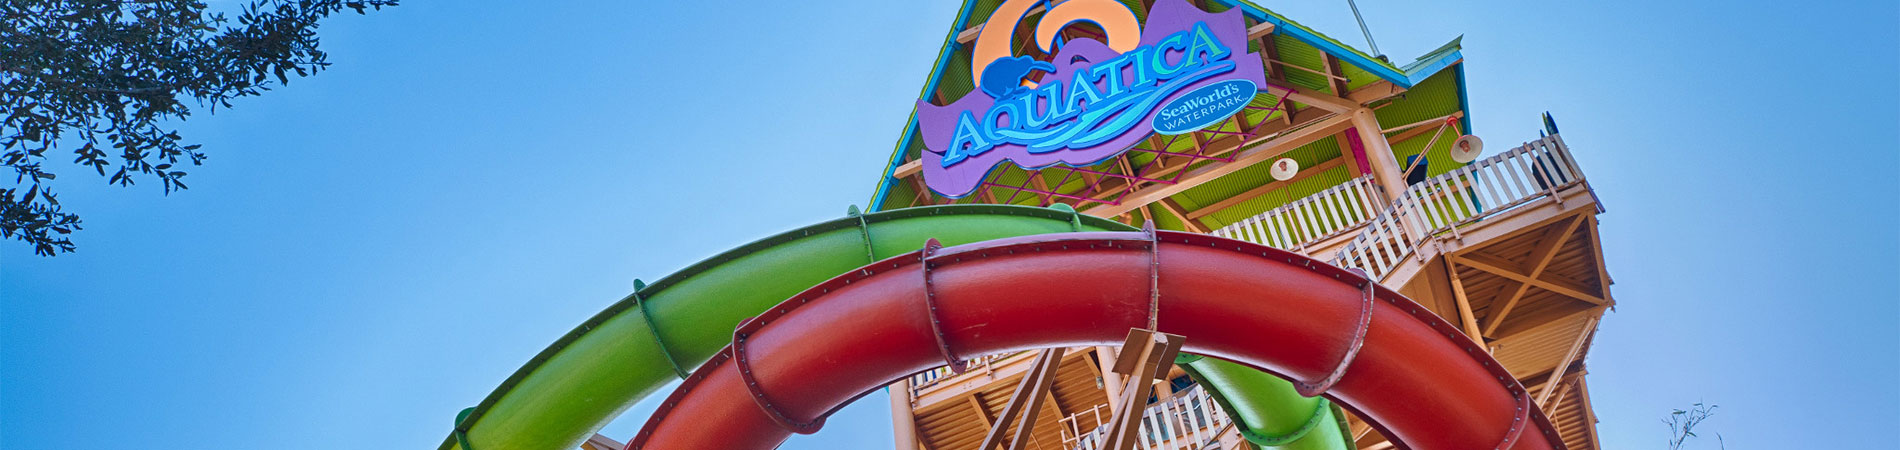 Slide and play at Aquatica, SeaWorld's water park in Orlando, Florida.